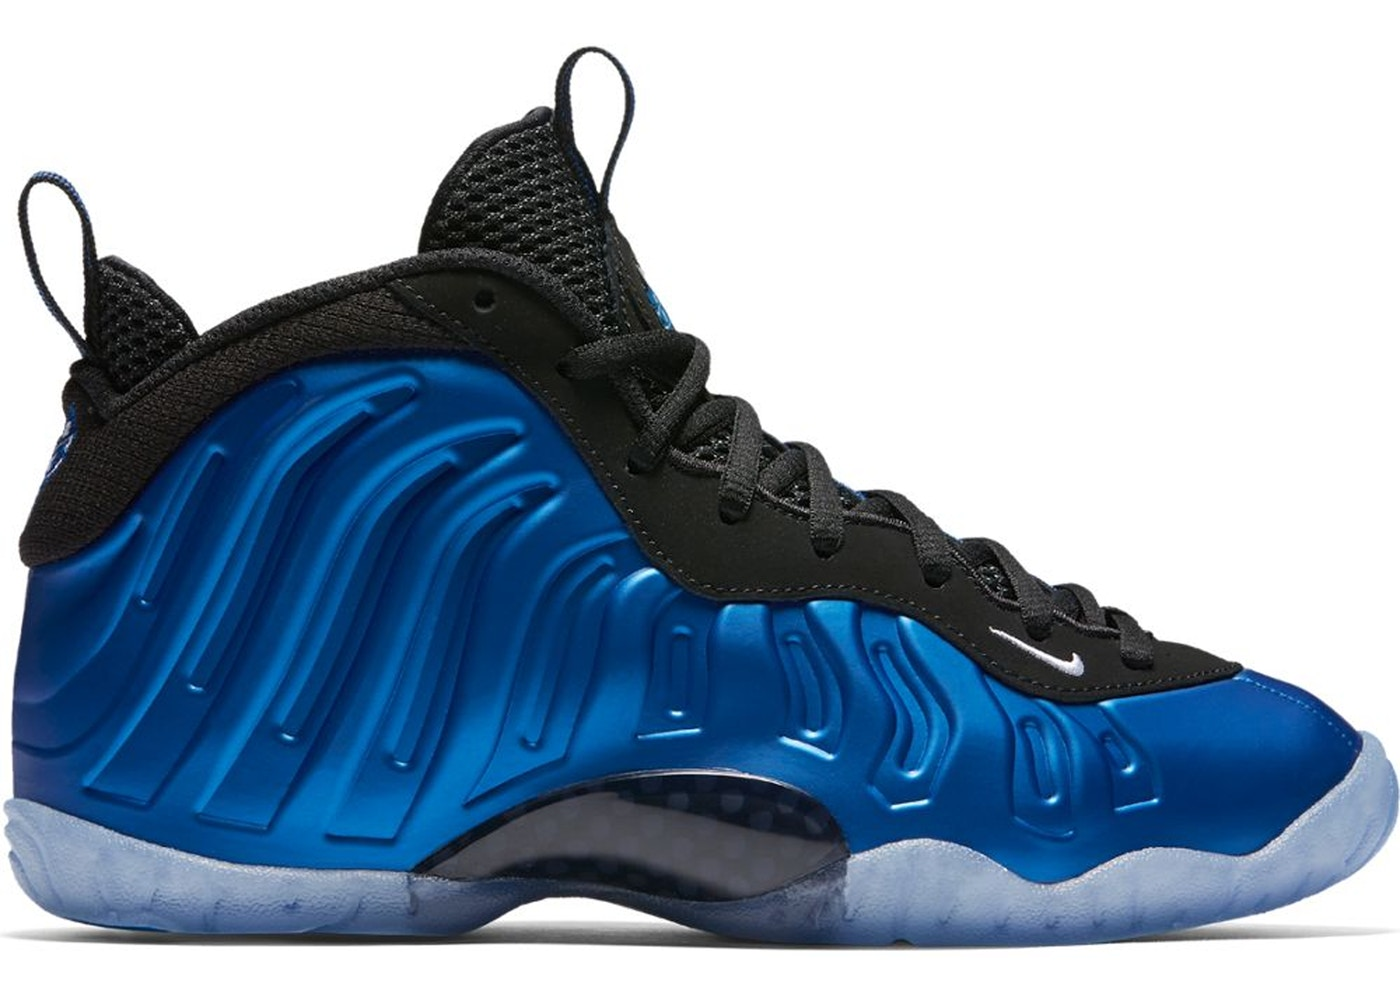 a9318ba7d23 Air Foamposite One Royal Blue XX 20th Anniversary 2017 (GS) - 898061-500